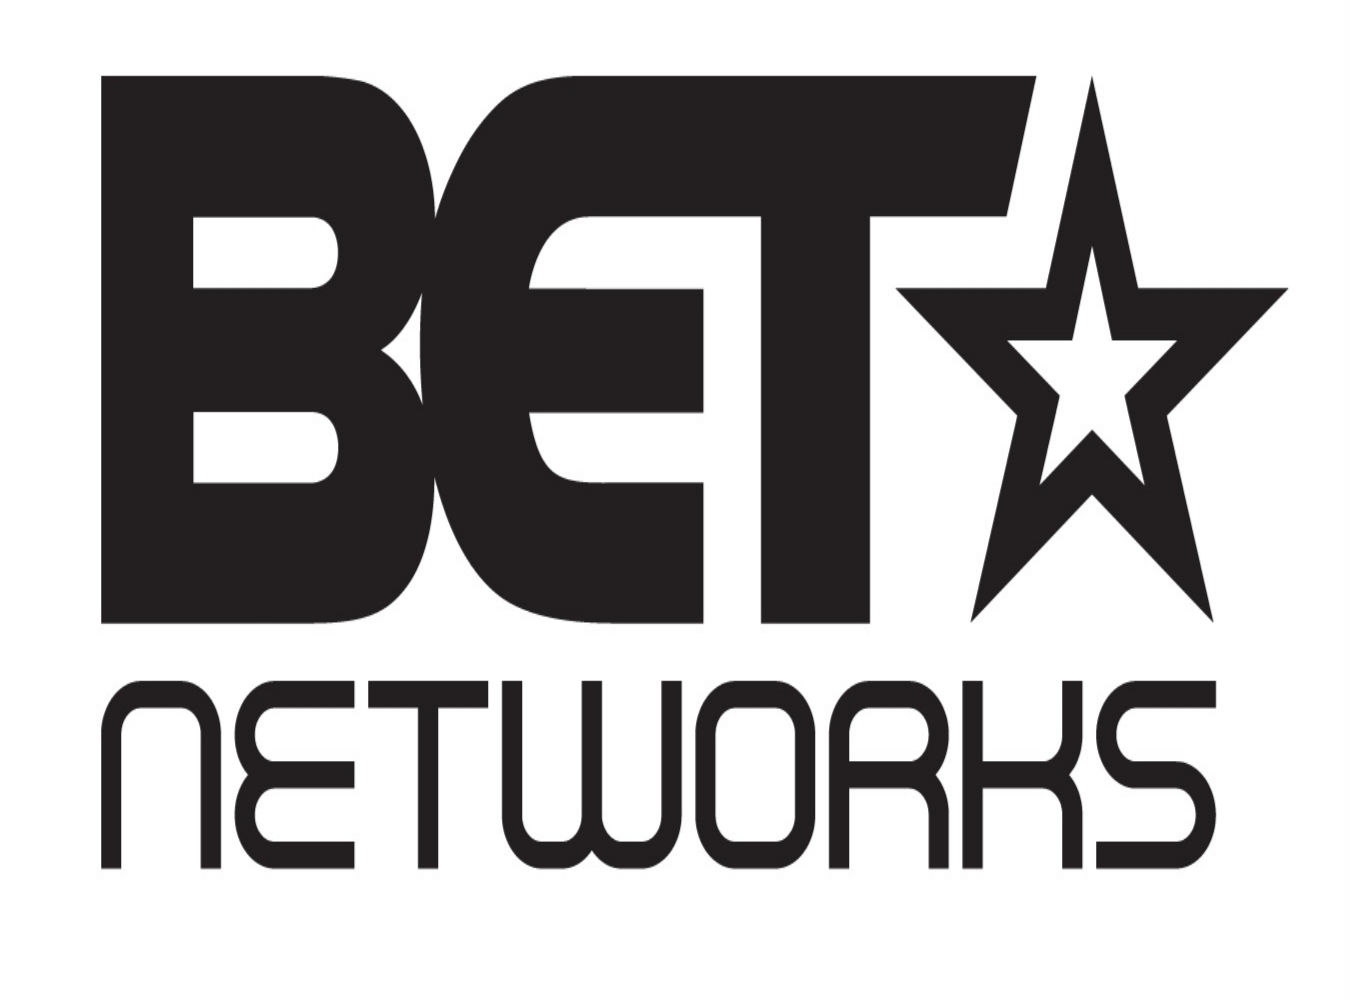 1350x1000 Bet Unveils 2015 2016 Slate Additions New Original Scripted